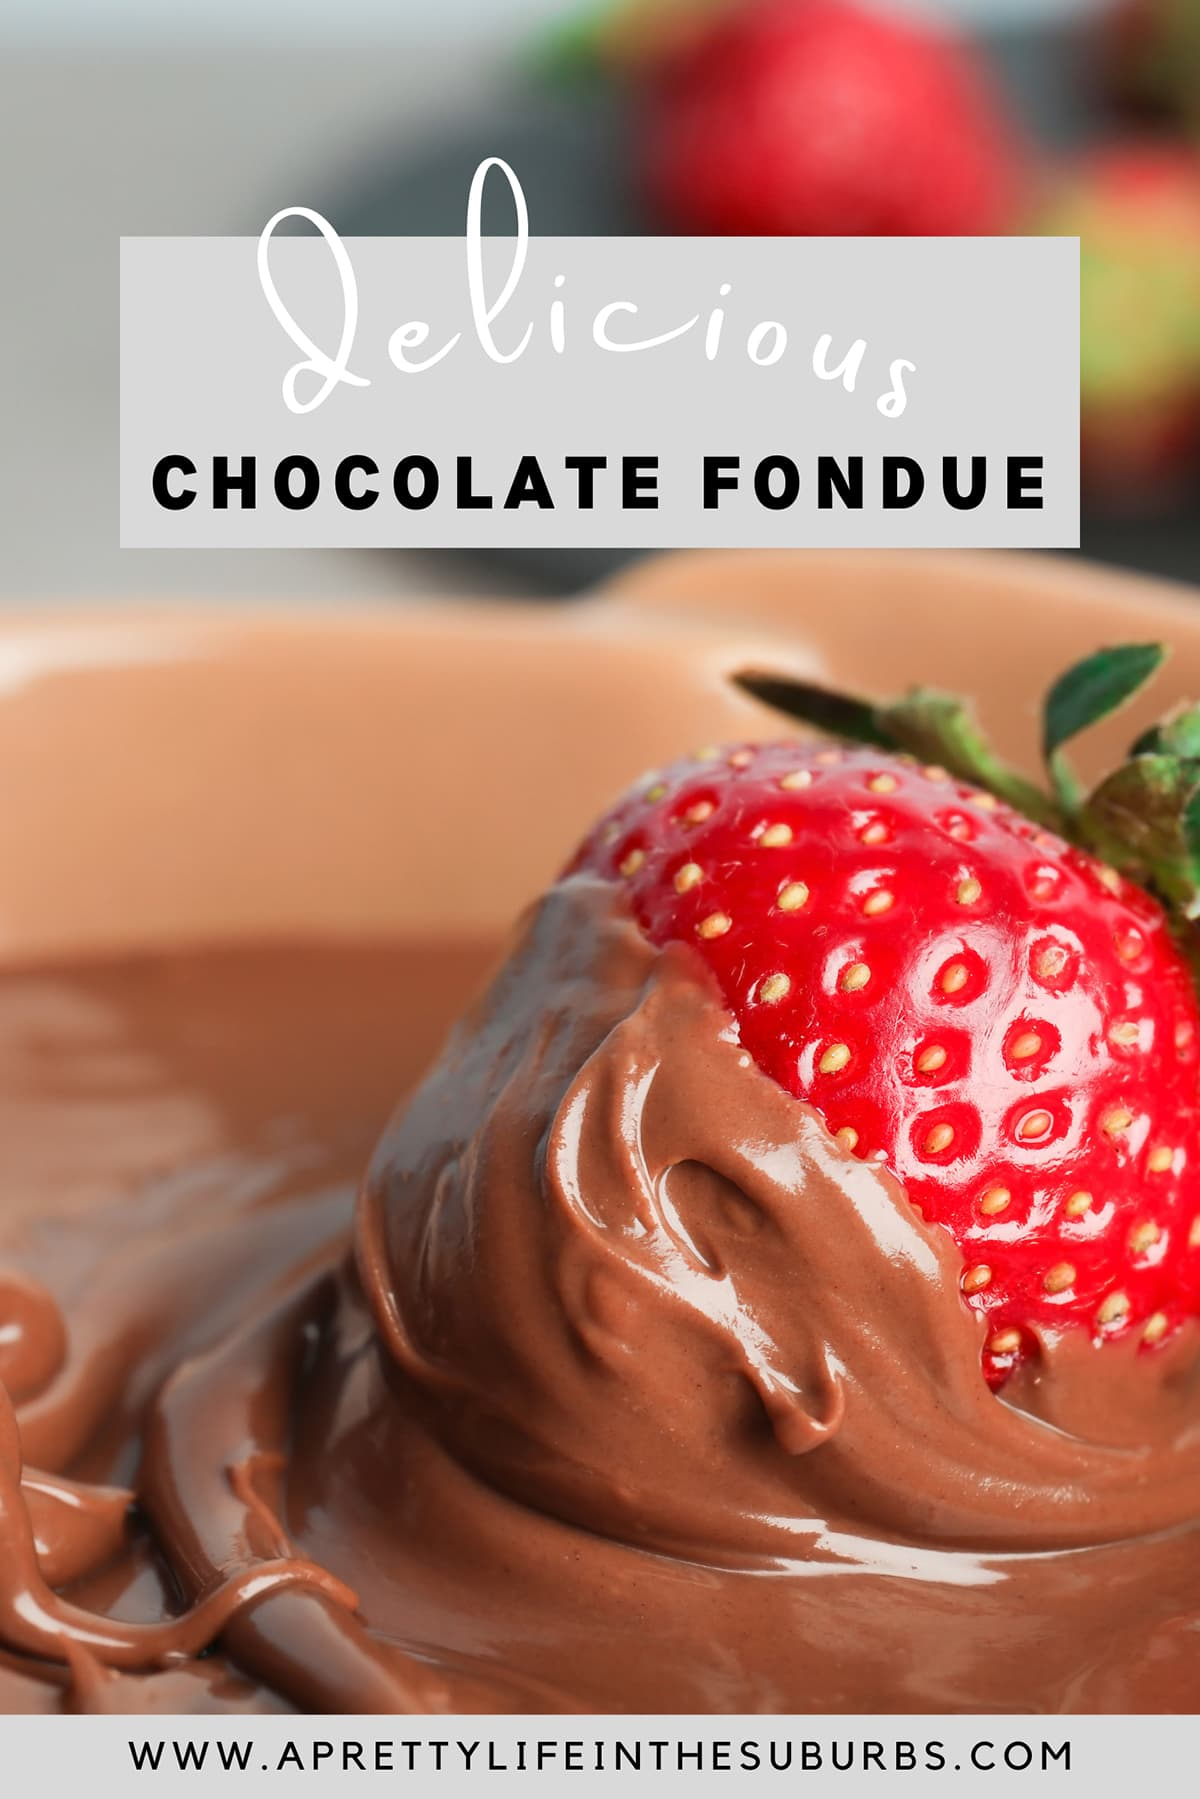 a strawberry dipped in chocolate fondue